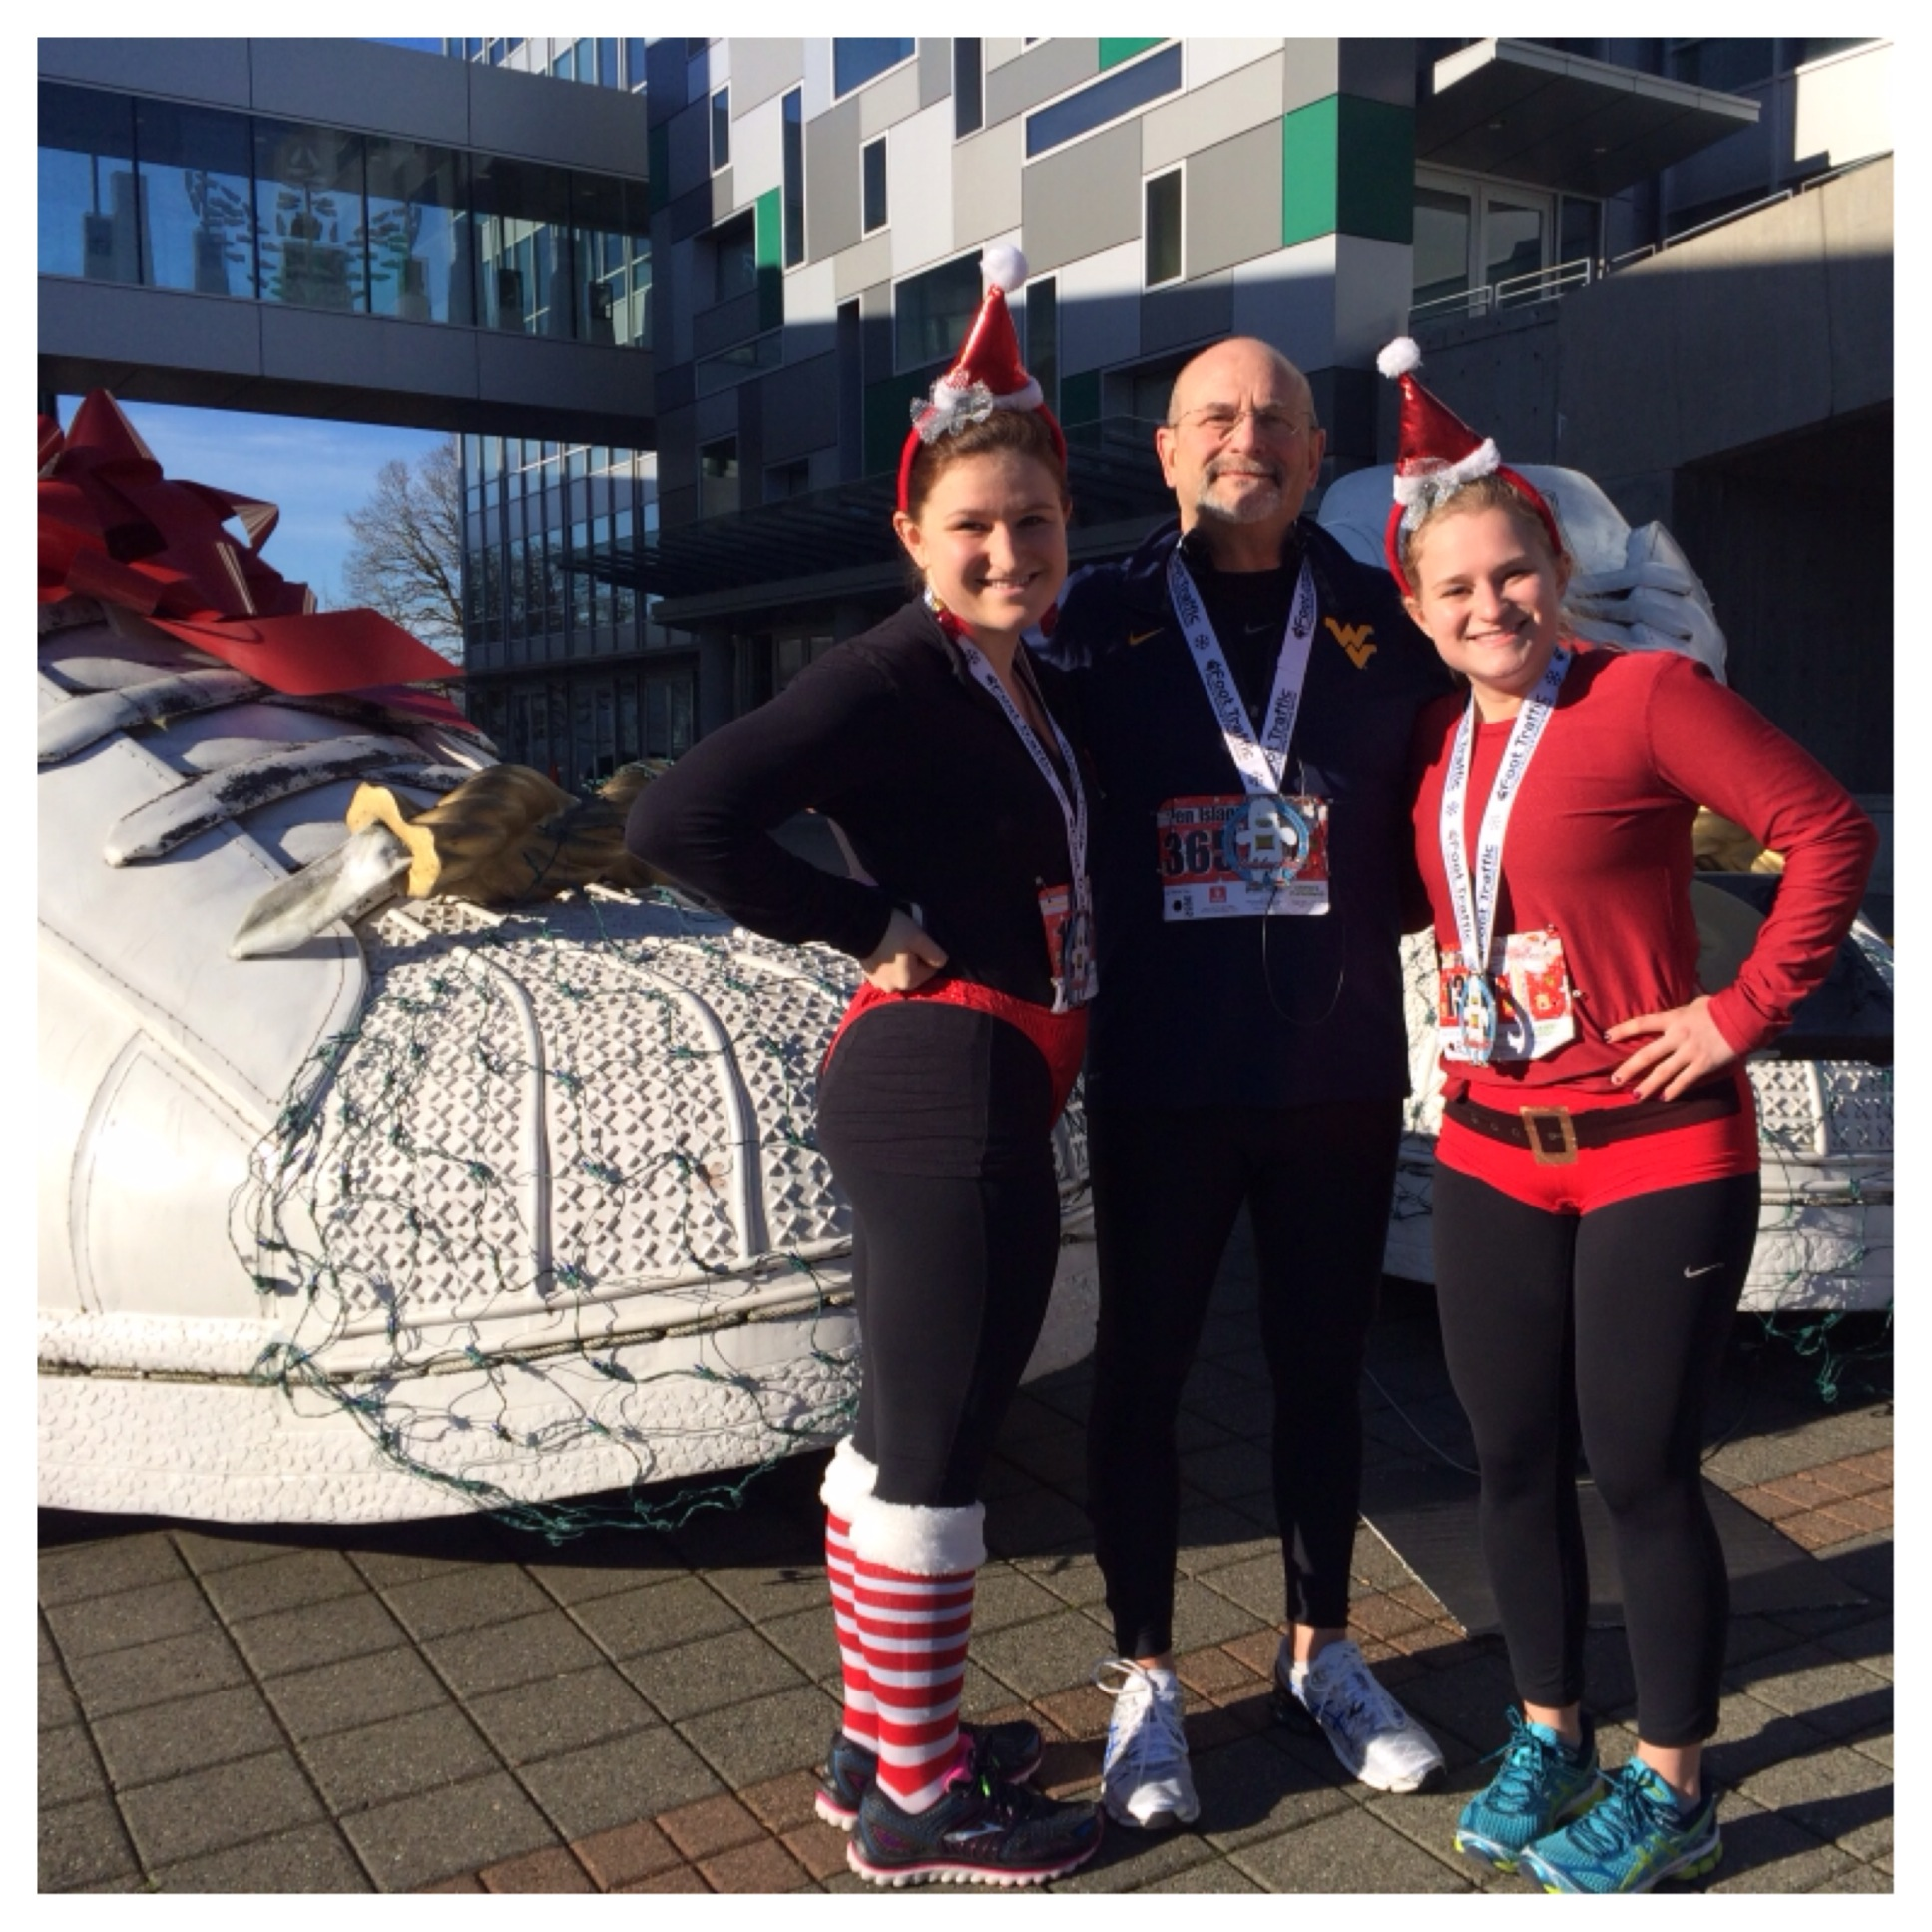 HolidayHalf2014